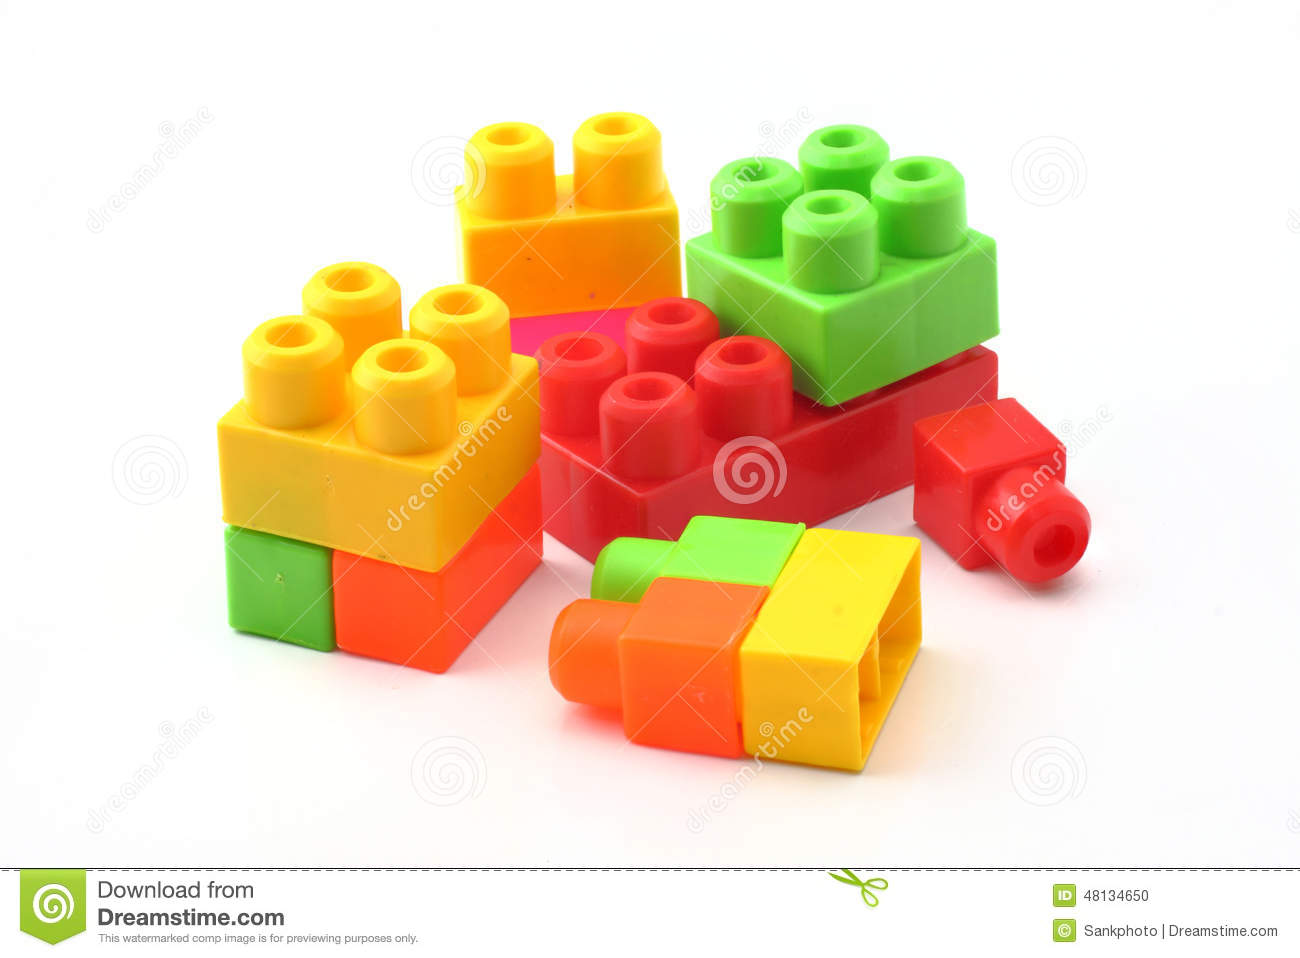 Plastic building blocks stock photo image 48134650 for Plastic building blocks home construction